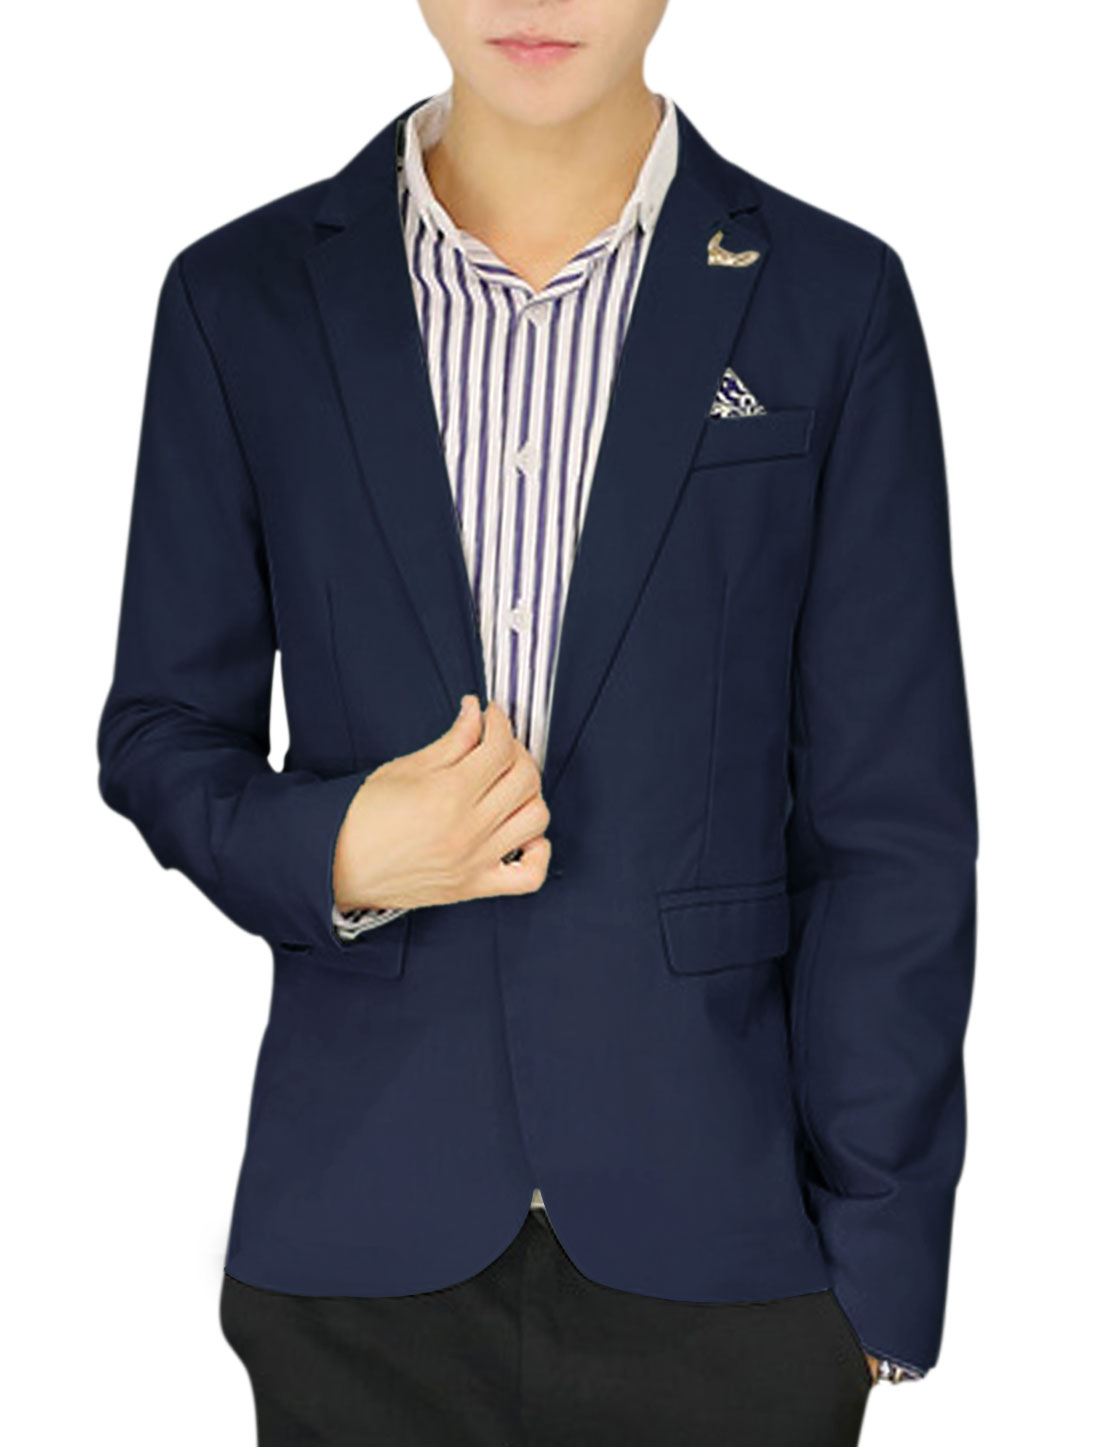 Men One Button Notched Lapel Leisure Blazer Navy Blue M